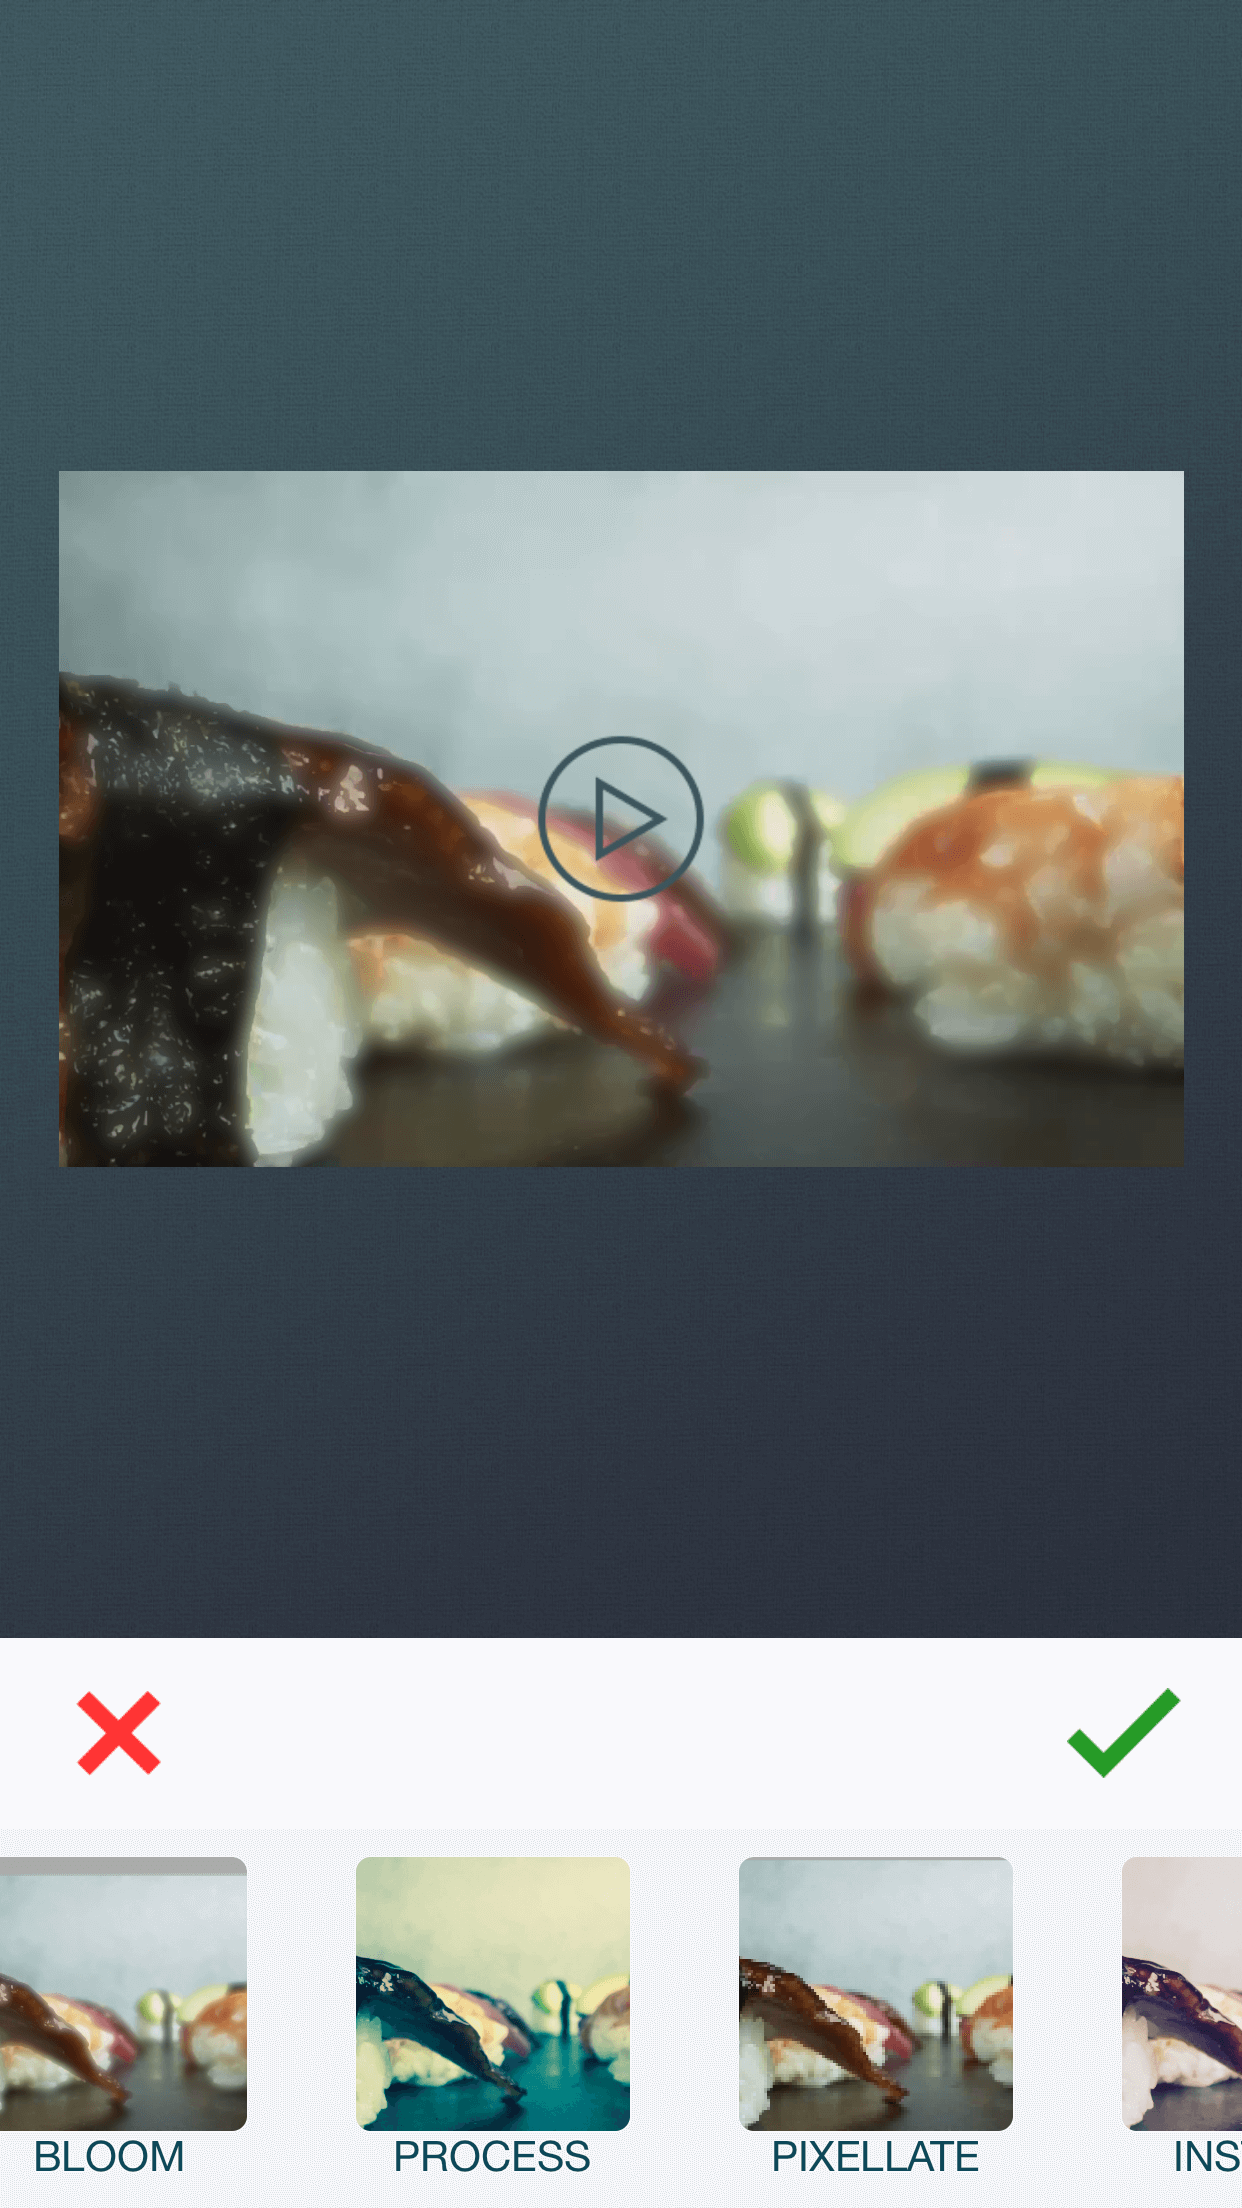 Apply filters to videos using zShot video editor app.